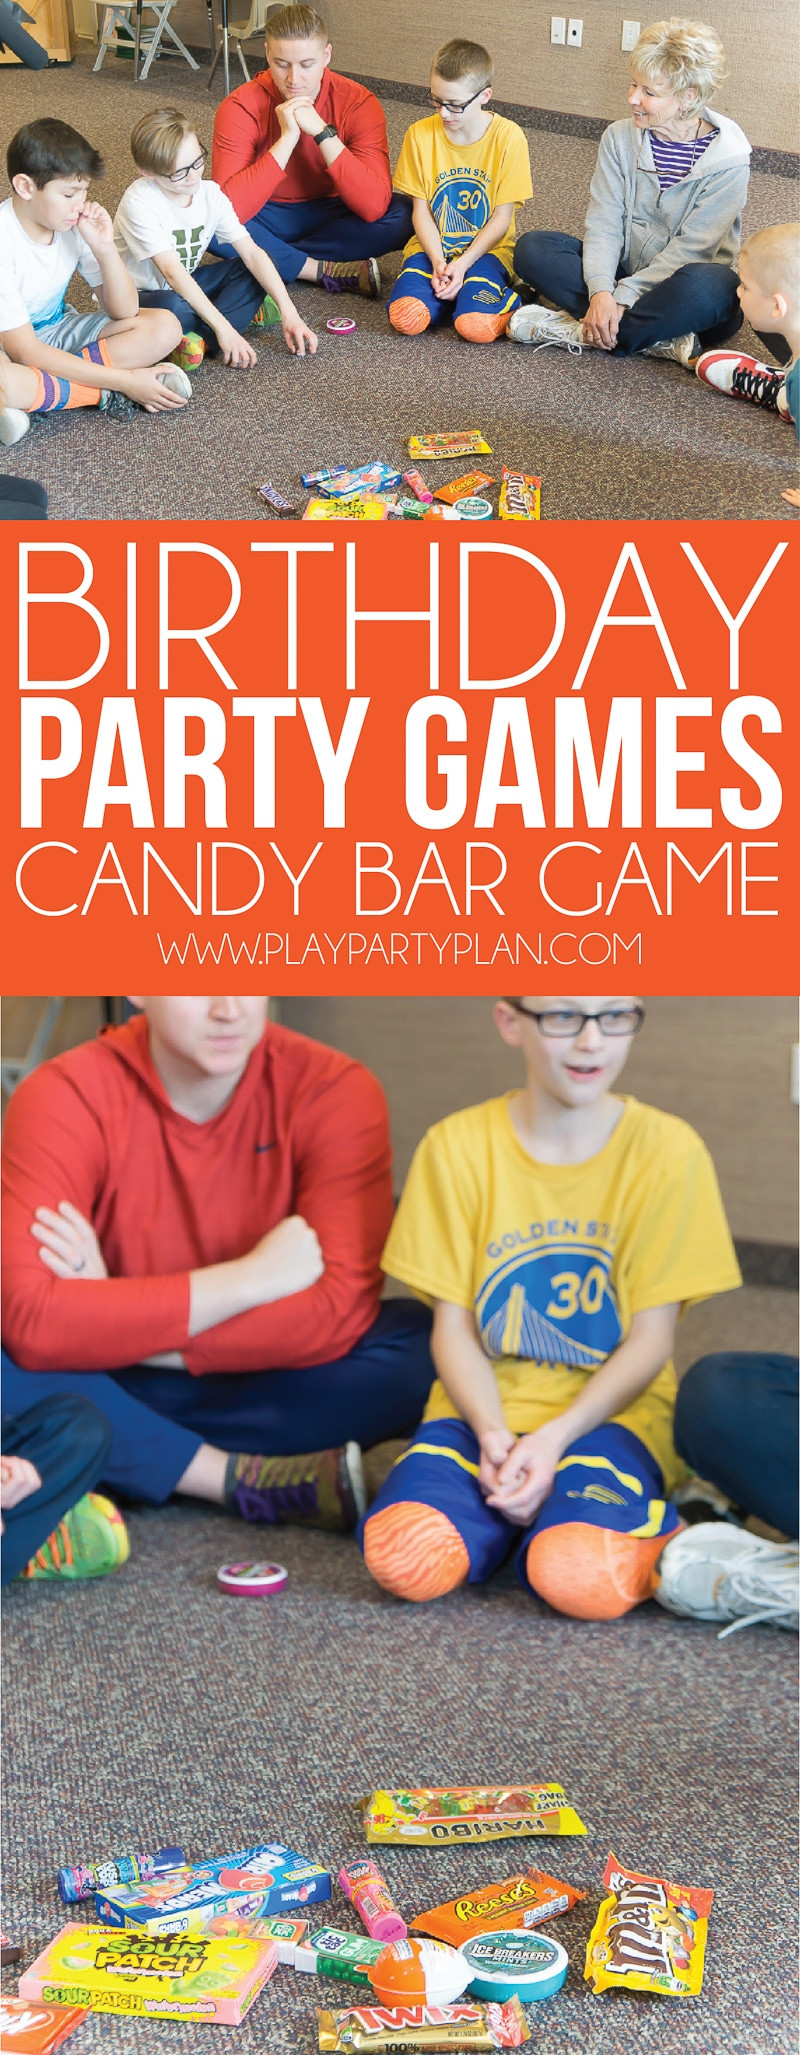 Games For Kids Bday Party  Hilarious Birthday Party Games for Kids & Adults Play